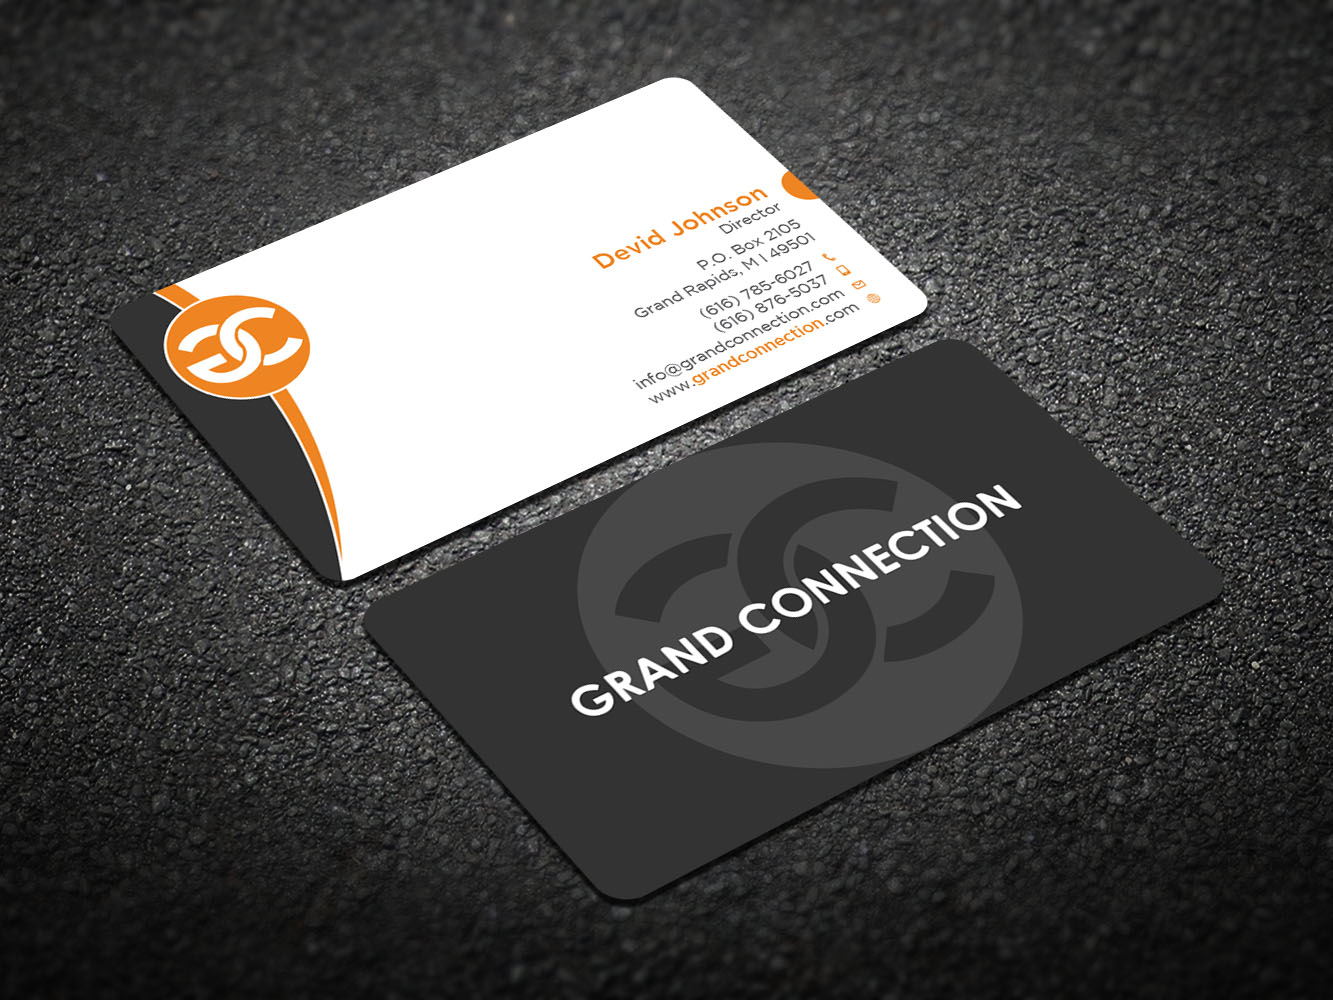 Modern professional event planning business card design for a business card design by design xeneration for this project design 12579751 colourmoves